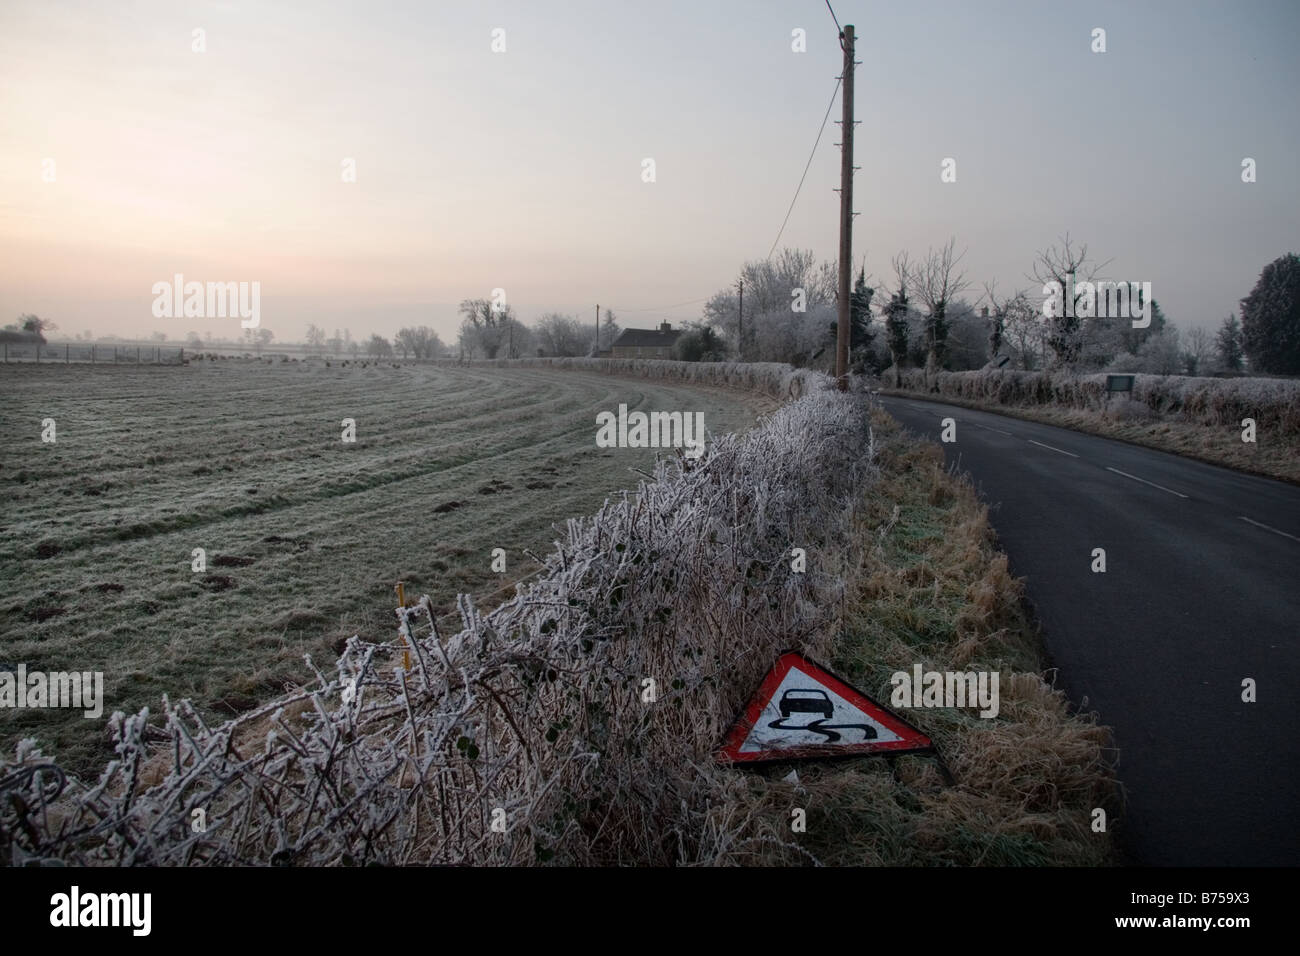 A  frosty winters morning landscape with a fallen slippery surface road sign: Somerset, UK - Stock Image